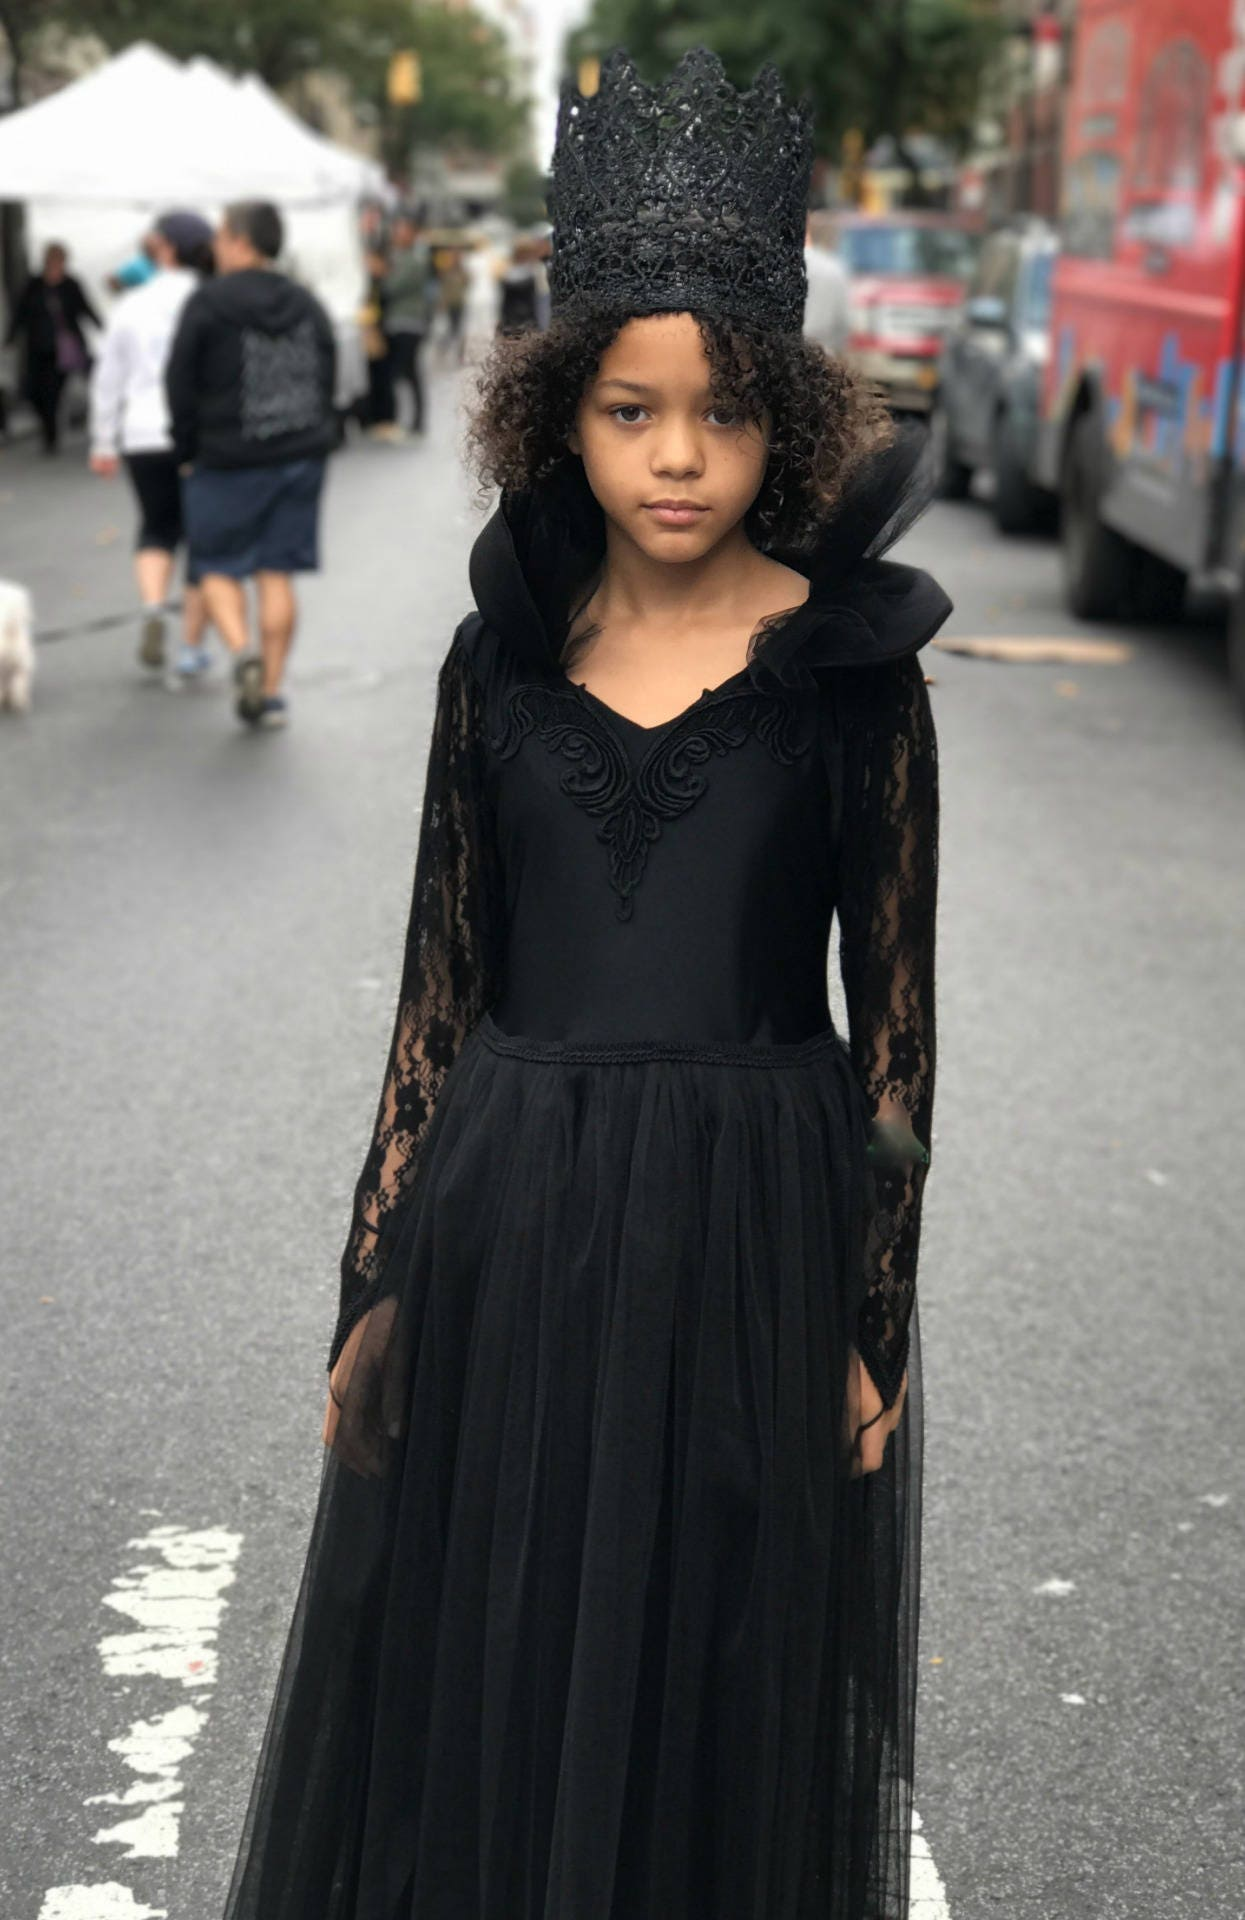 source once upon a time costume evil princess dress maleficent inspired